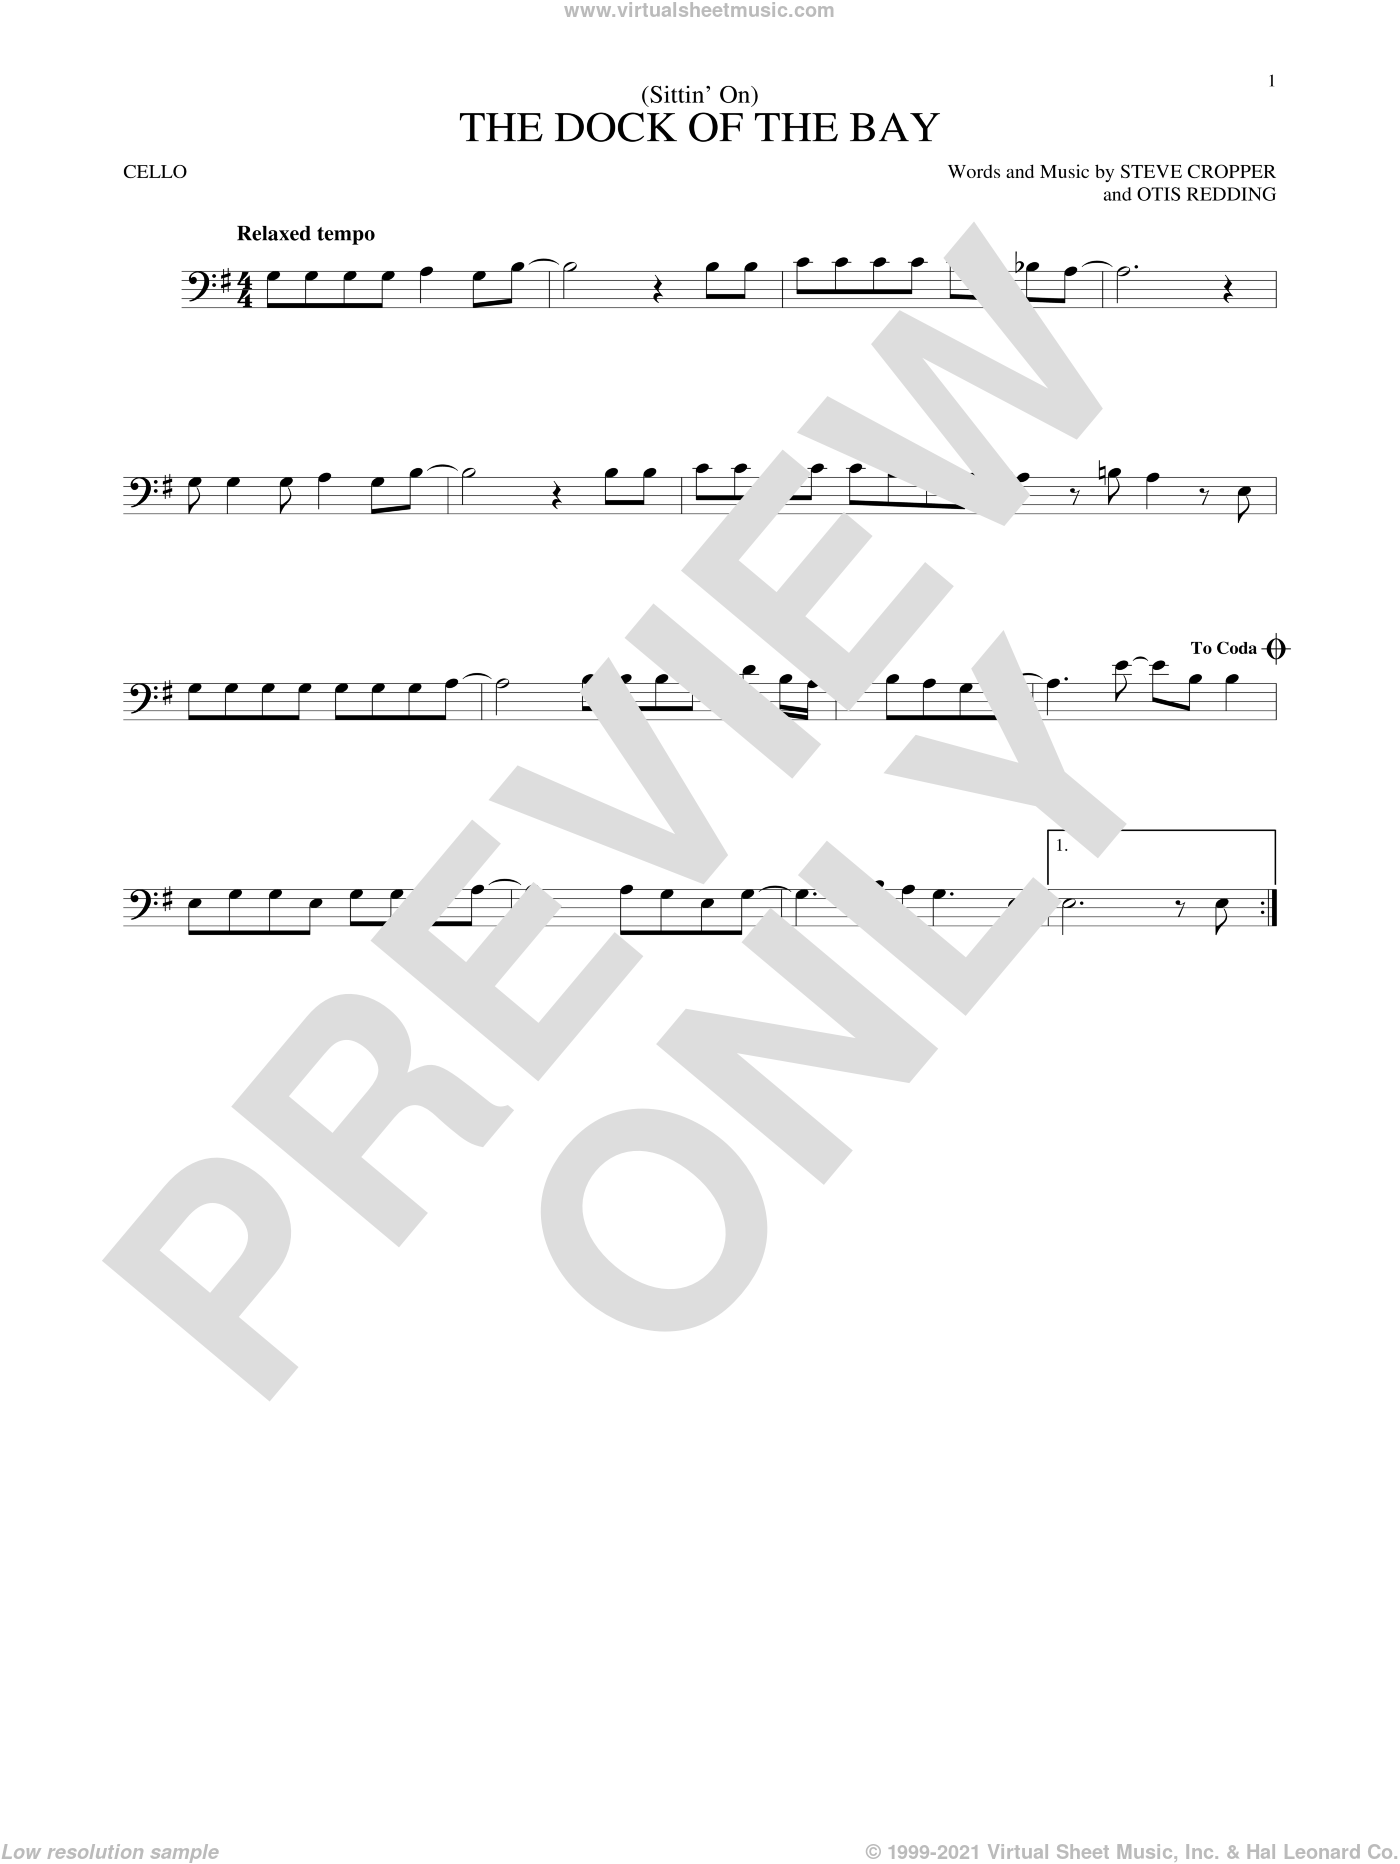 (Sittin' On) The Dock Of The Bay sheet music for cello solo by Otis Redding and Steve Cropper, intermediate. Score Image Preview.